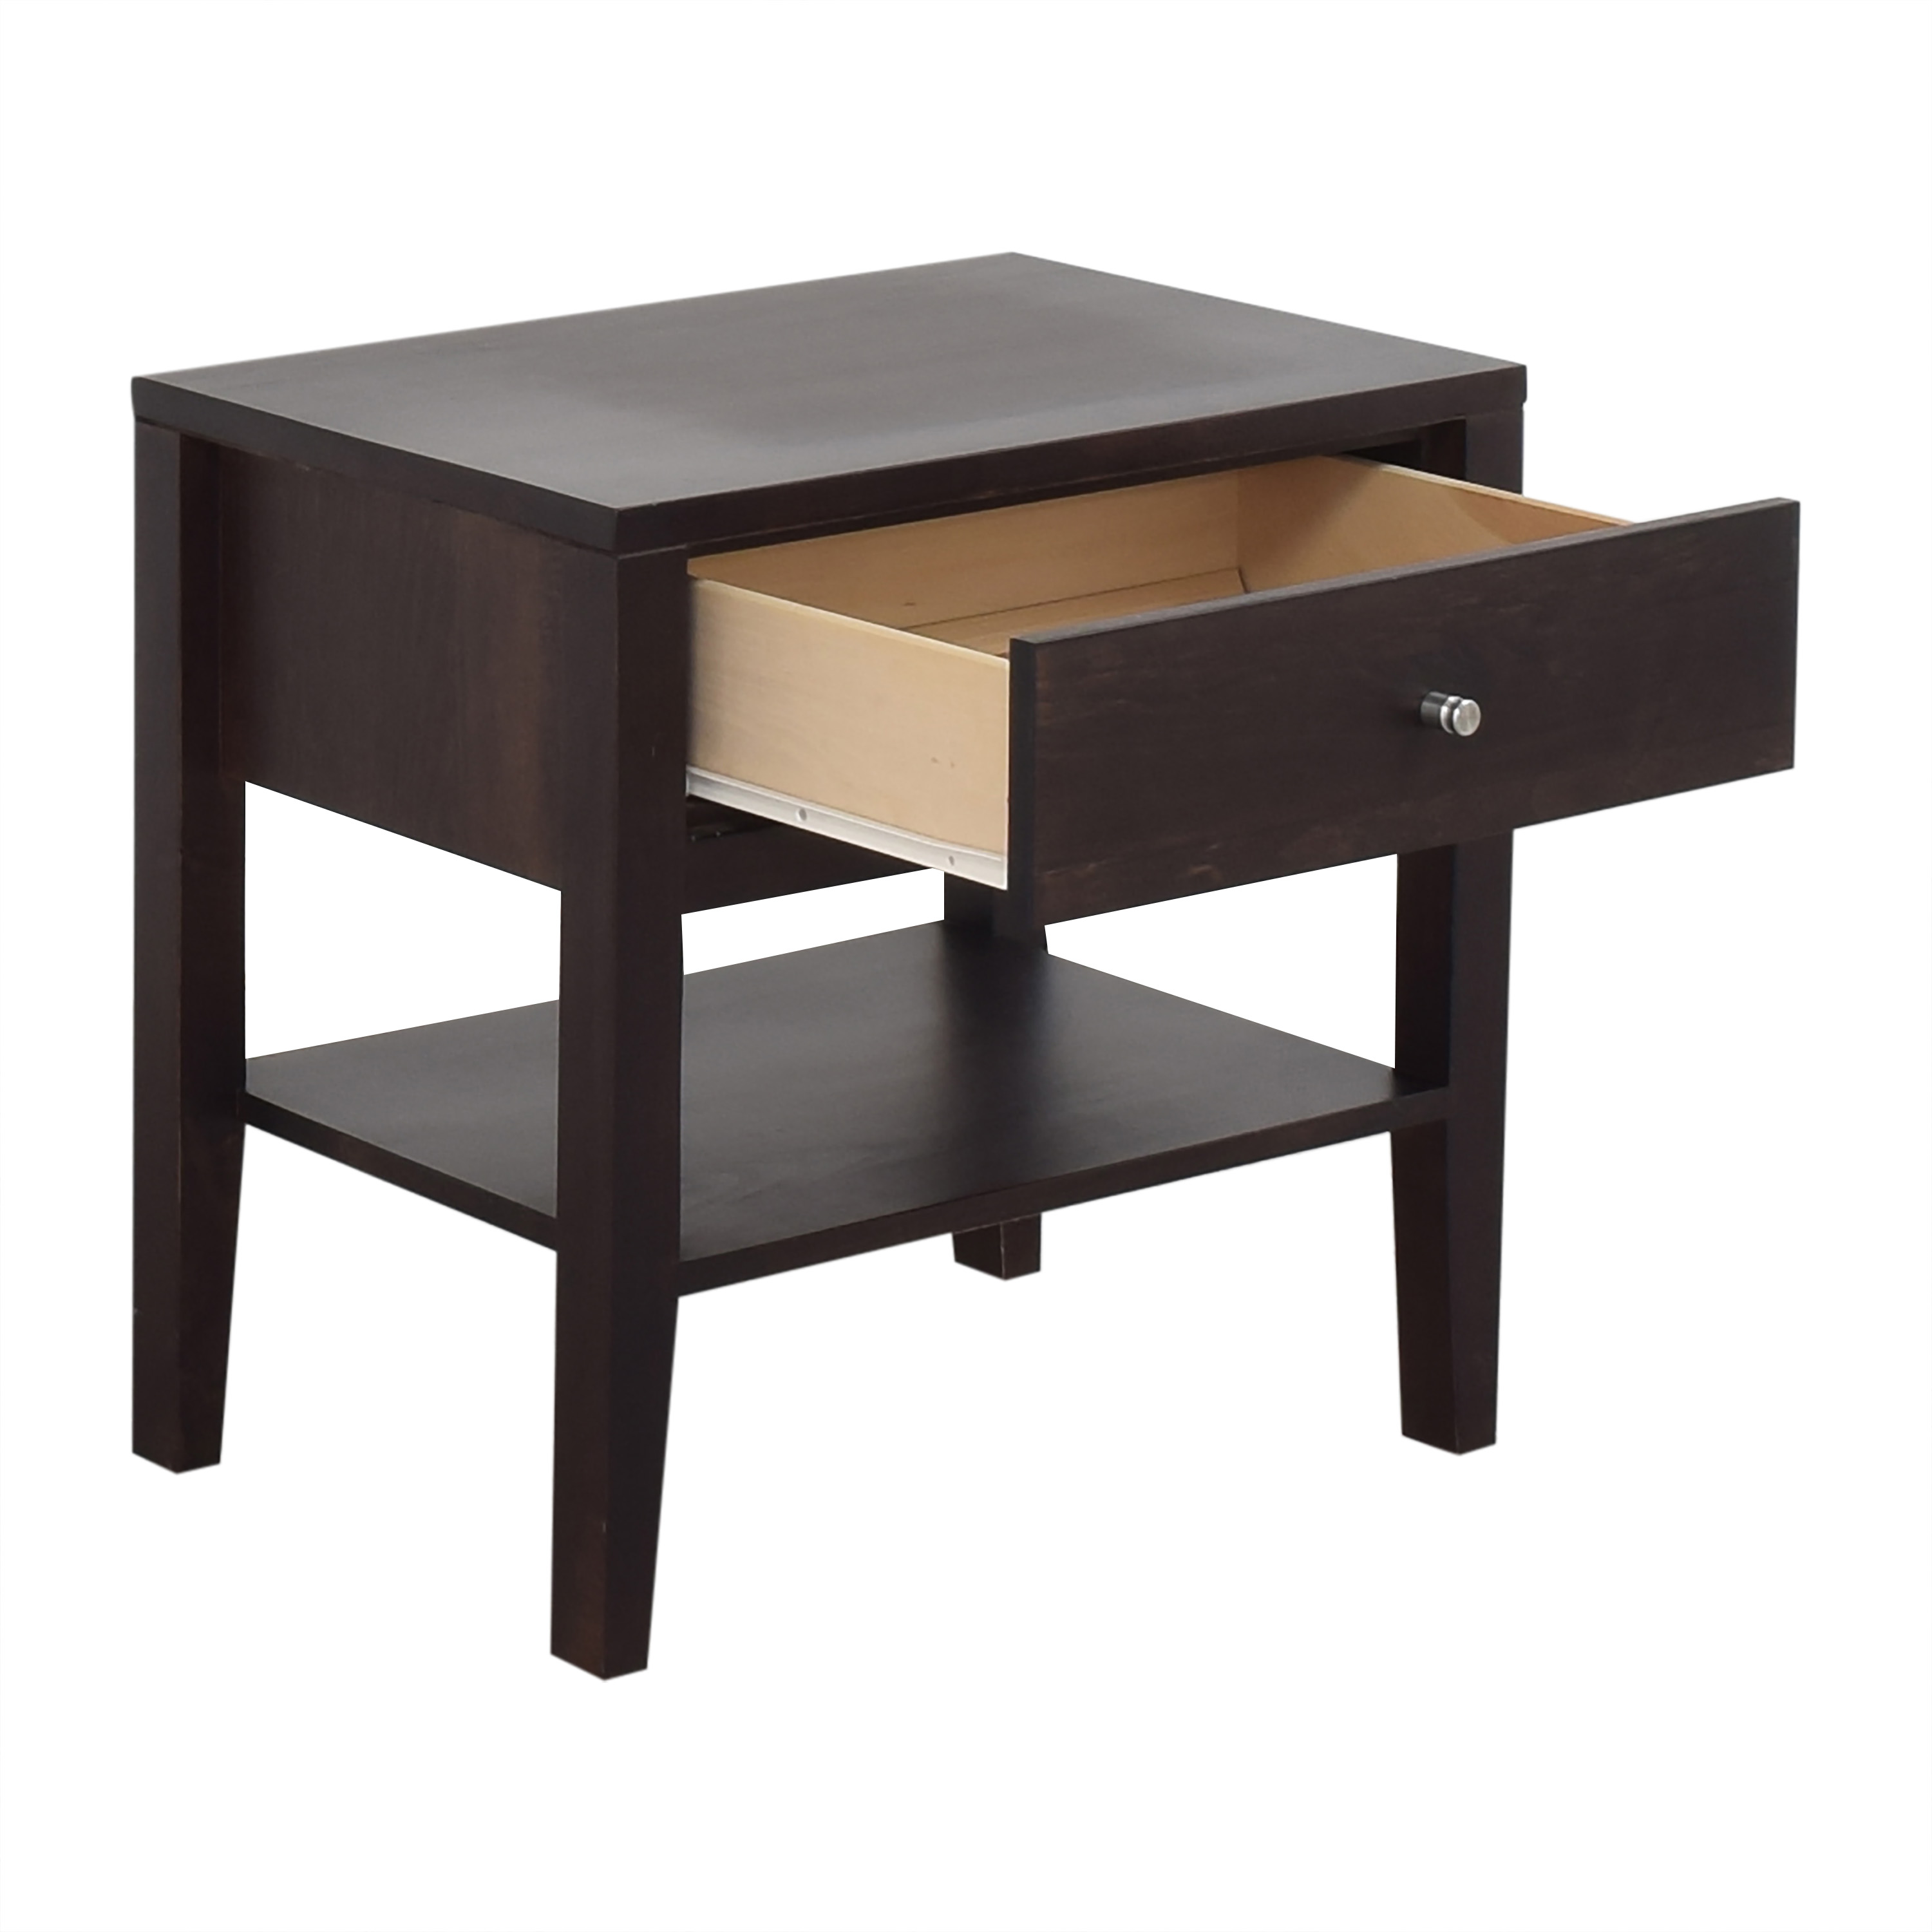 Room & Board Calvin Single Drawer Nightstand / End Tables